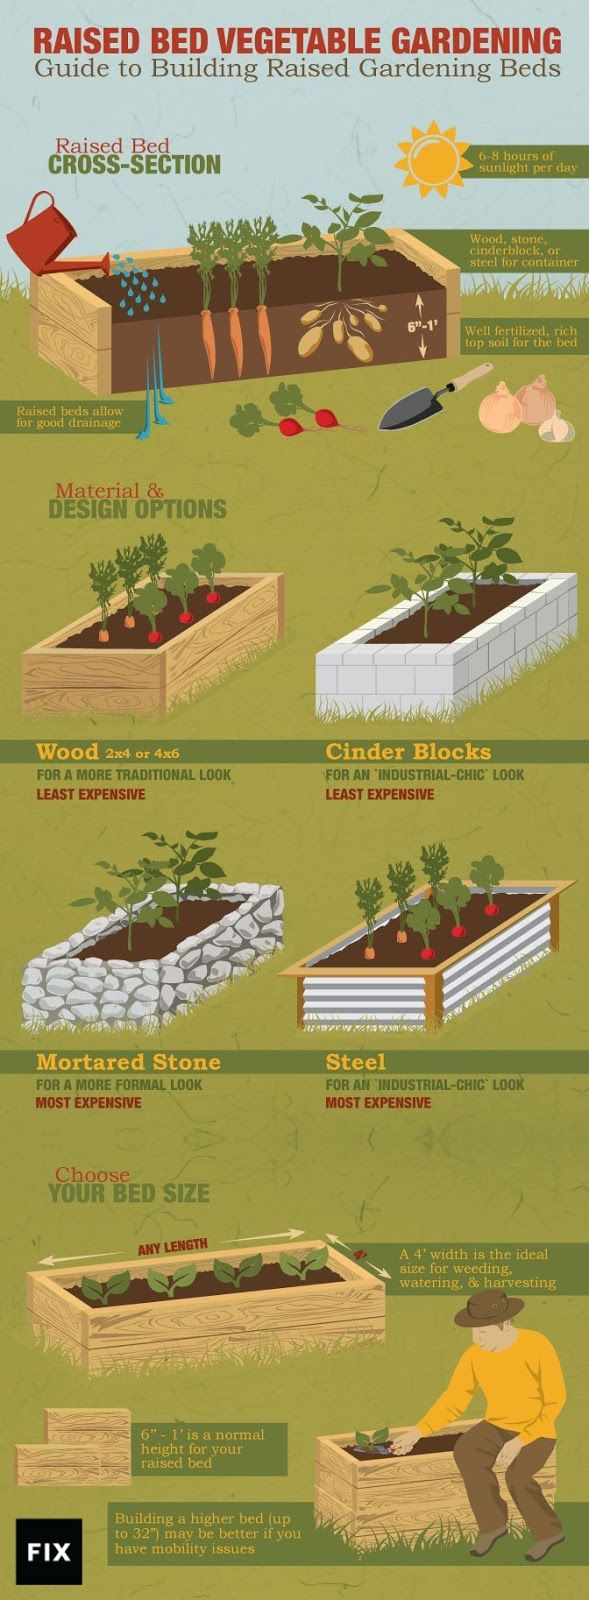 A Guide To Building Raised Gardening Beds....